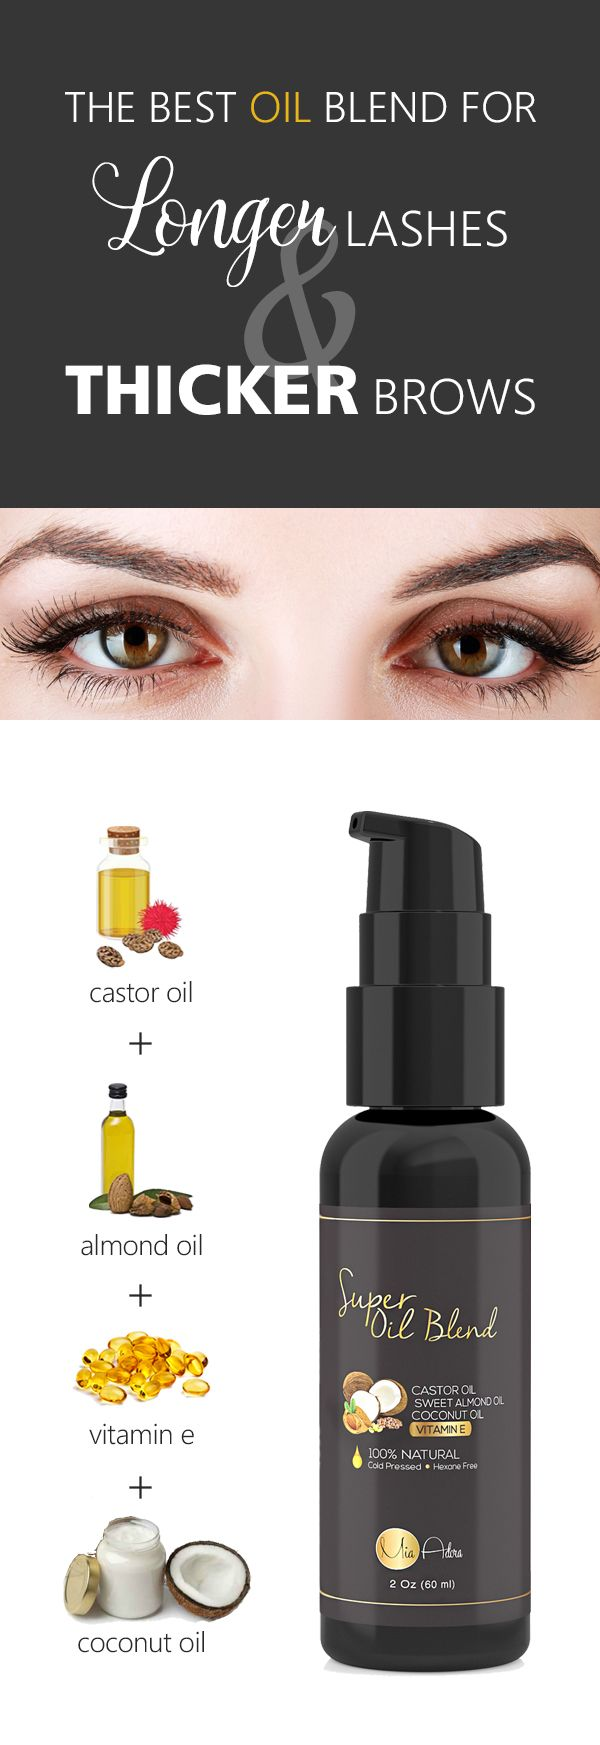 Best Care - Castor Oil for Eyelashes 31